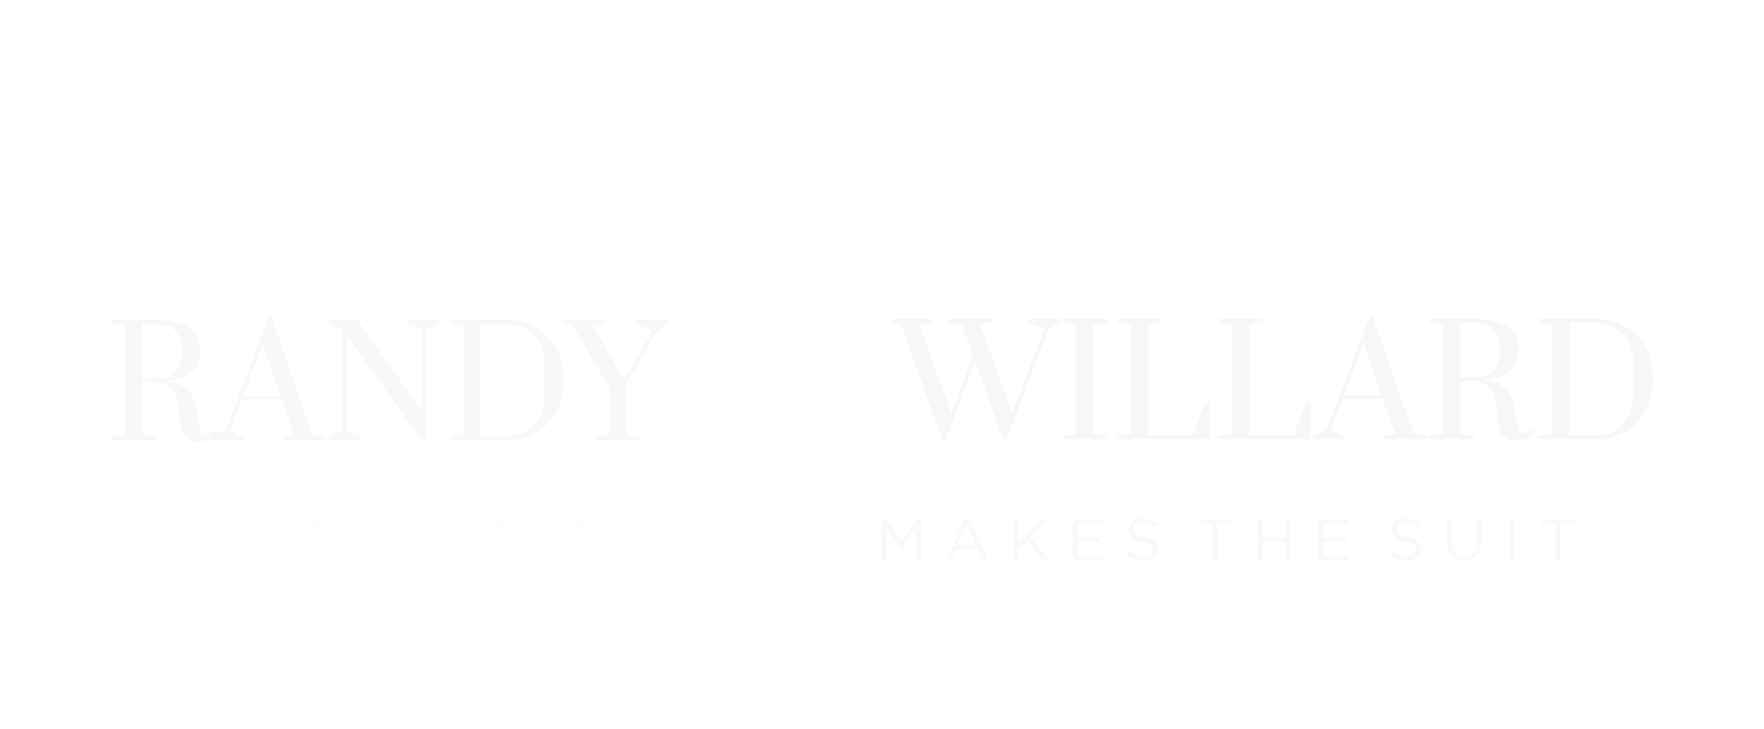 randy-willard-the-man-makes-the-suit-logo